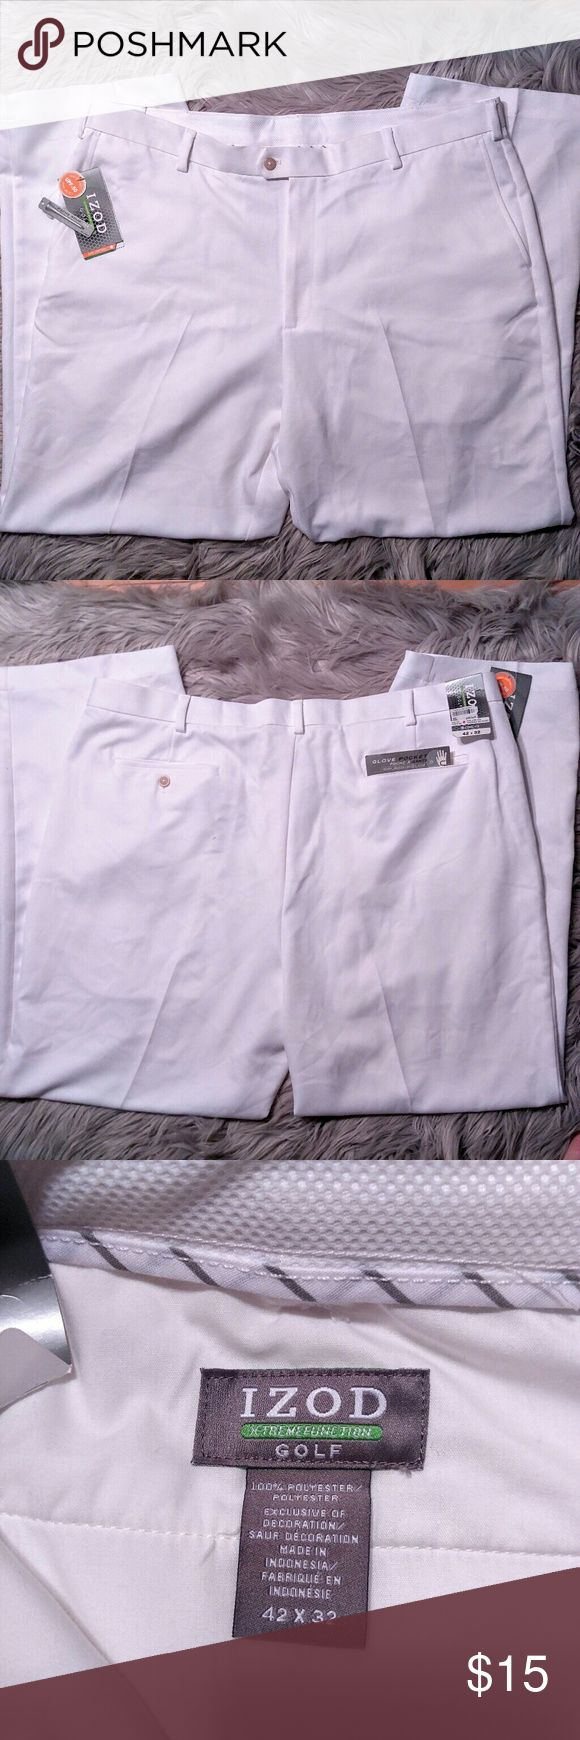 NWT white Izod Golf Pants NWT white Izod Golf Pants Sun protection and comfortable material will keep you cool on the green. Crisp white color brand new with tags. Size 42x32 with Upf 50. Izod Pants Chinos & Khakis